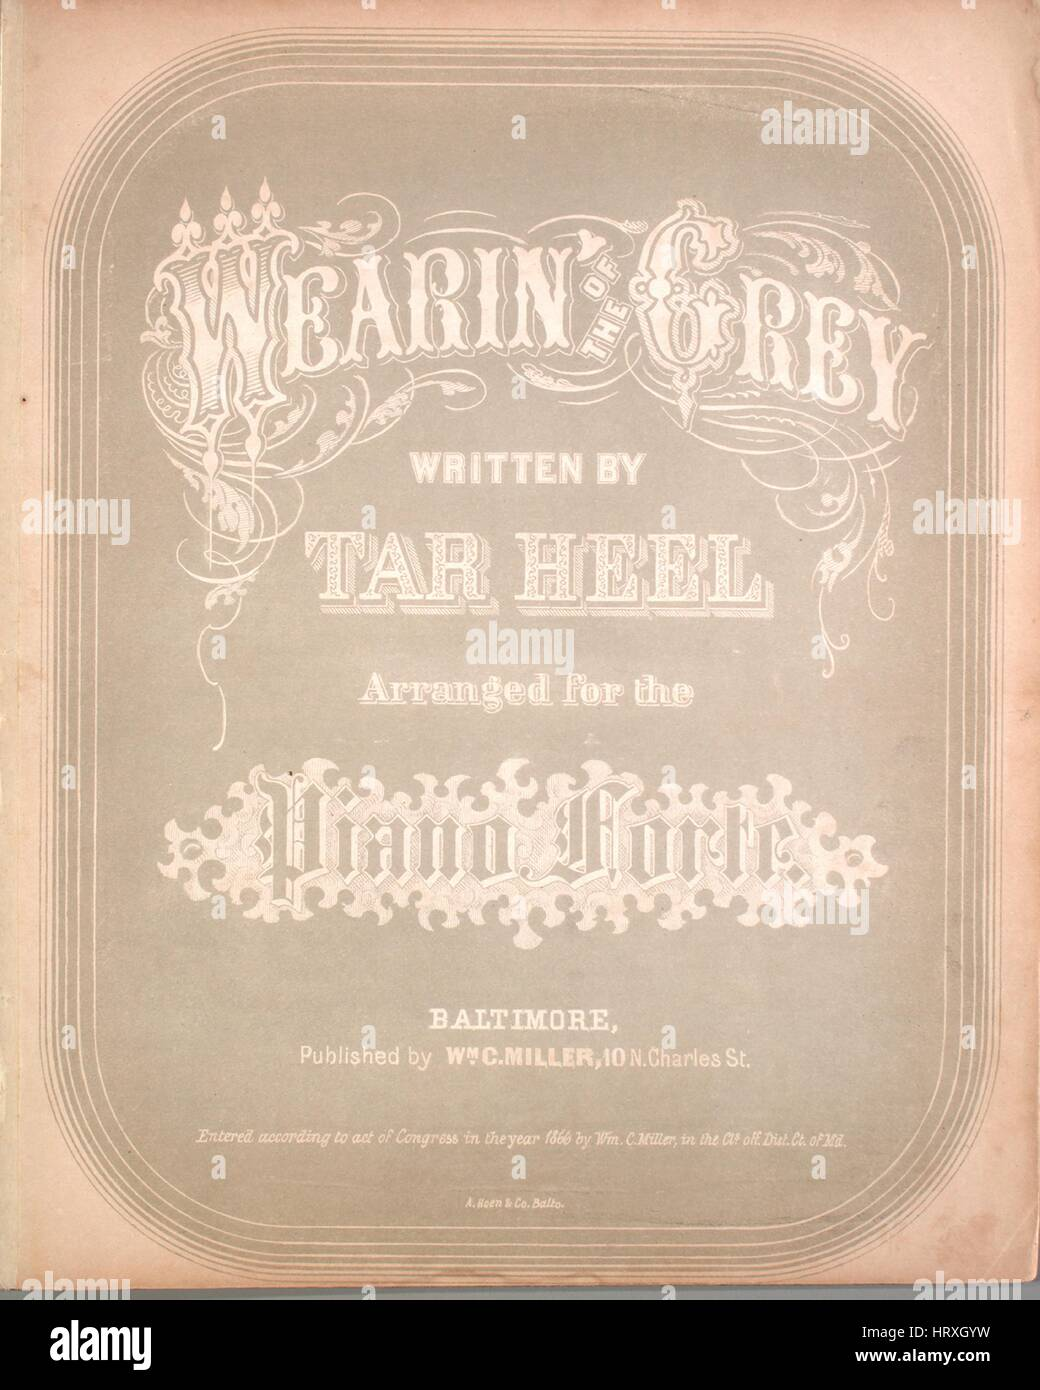 Sheet music cover image of the song 'Wearin' of the Grey', with original authorship notes reading 'Written by Tar Stock Photo